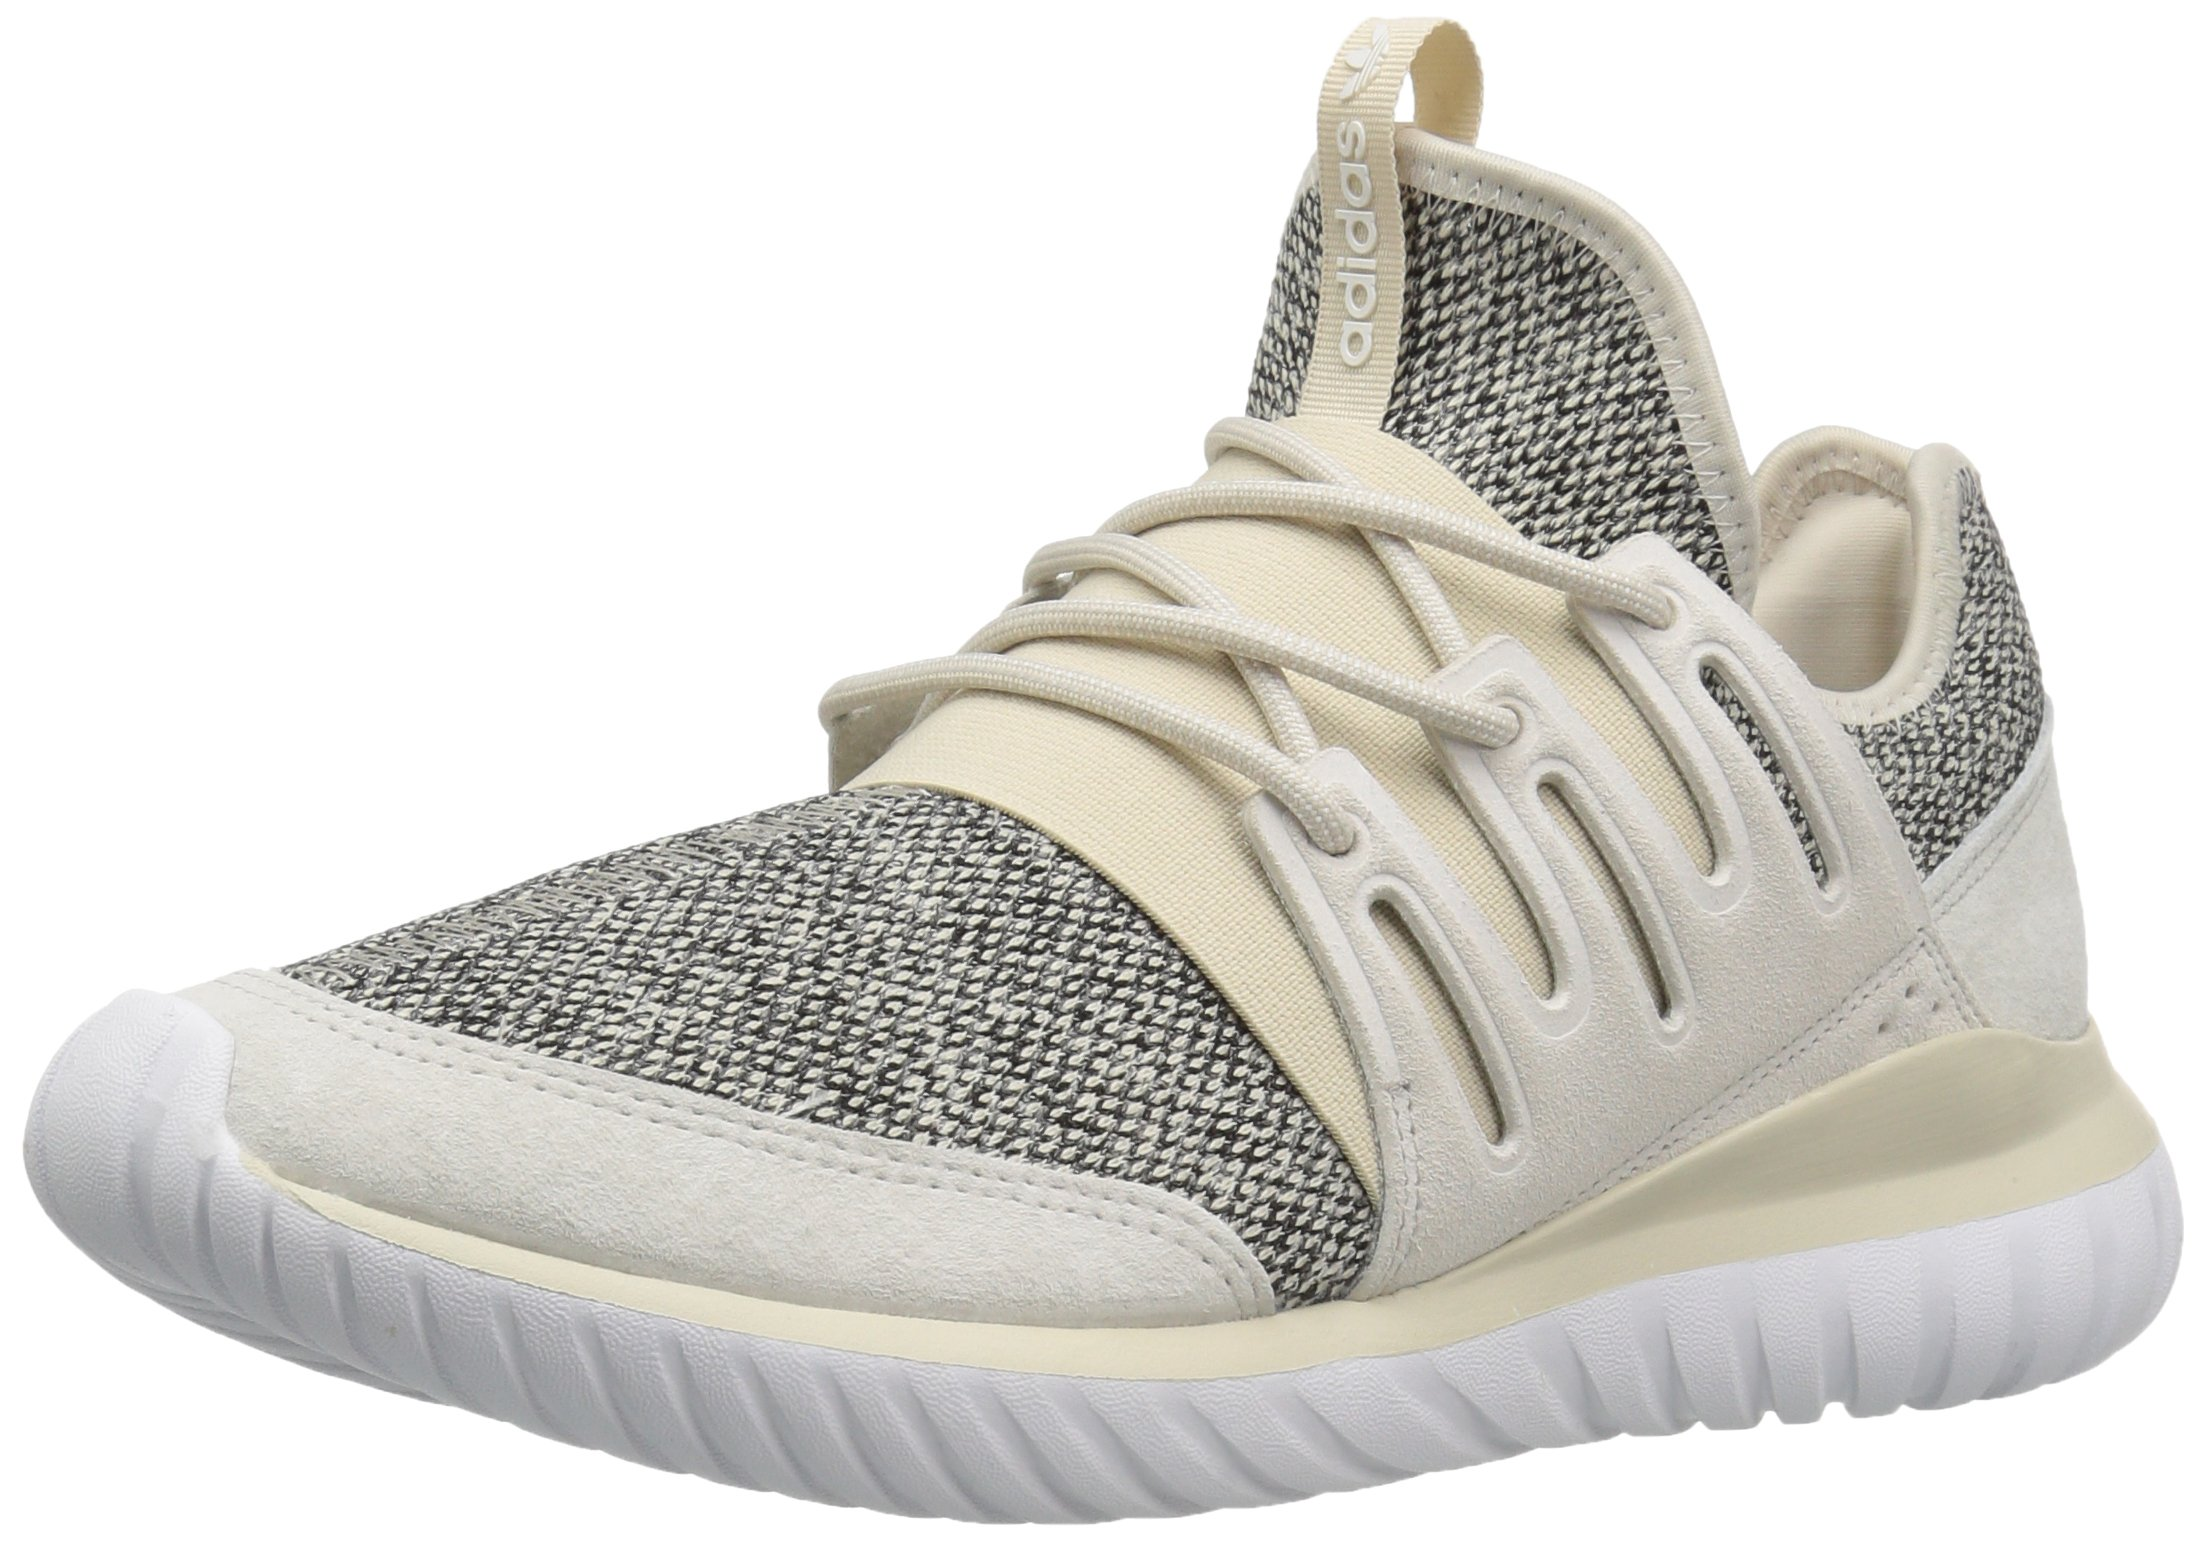 the latest b3bce 94991 Galleon - Adidas Originals Men s Tubular Radial Fashion Running Shoe,  Clear Brown Collegiate Silver Black, (10 M US)